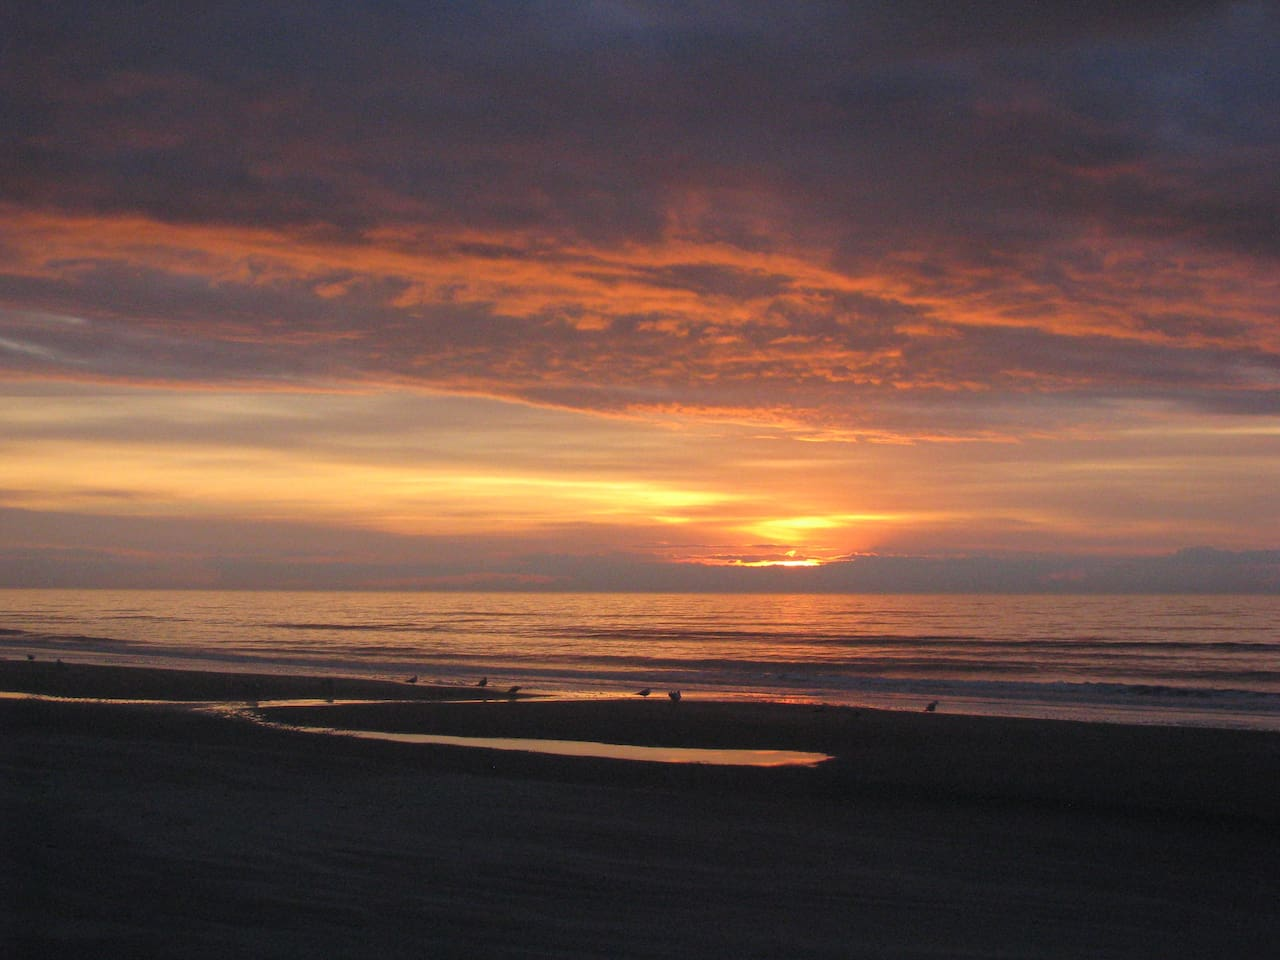 Sunrise at Cherry Grove in front of Beach Blessings condo